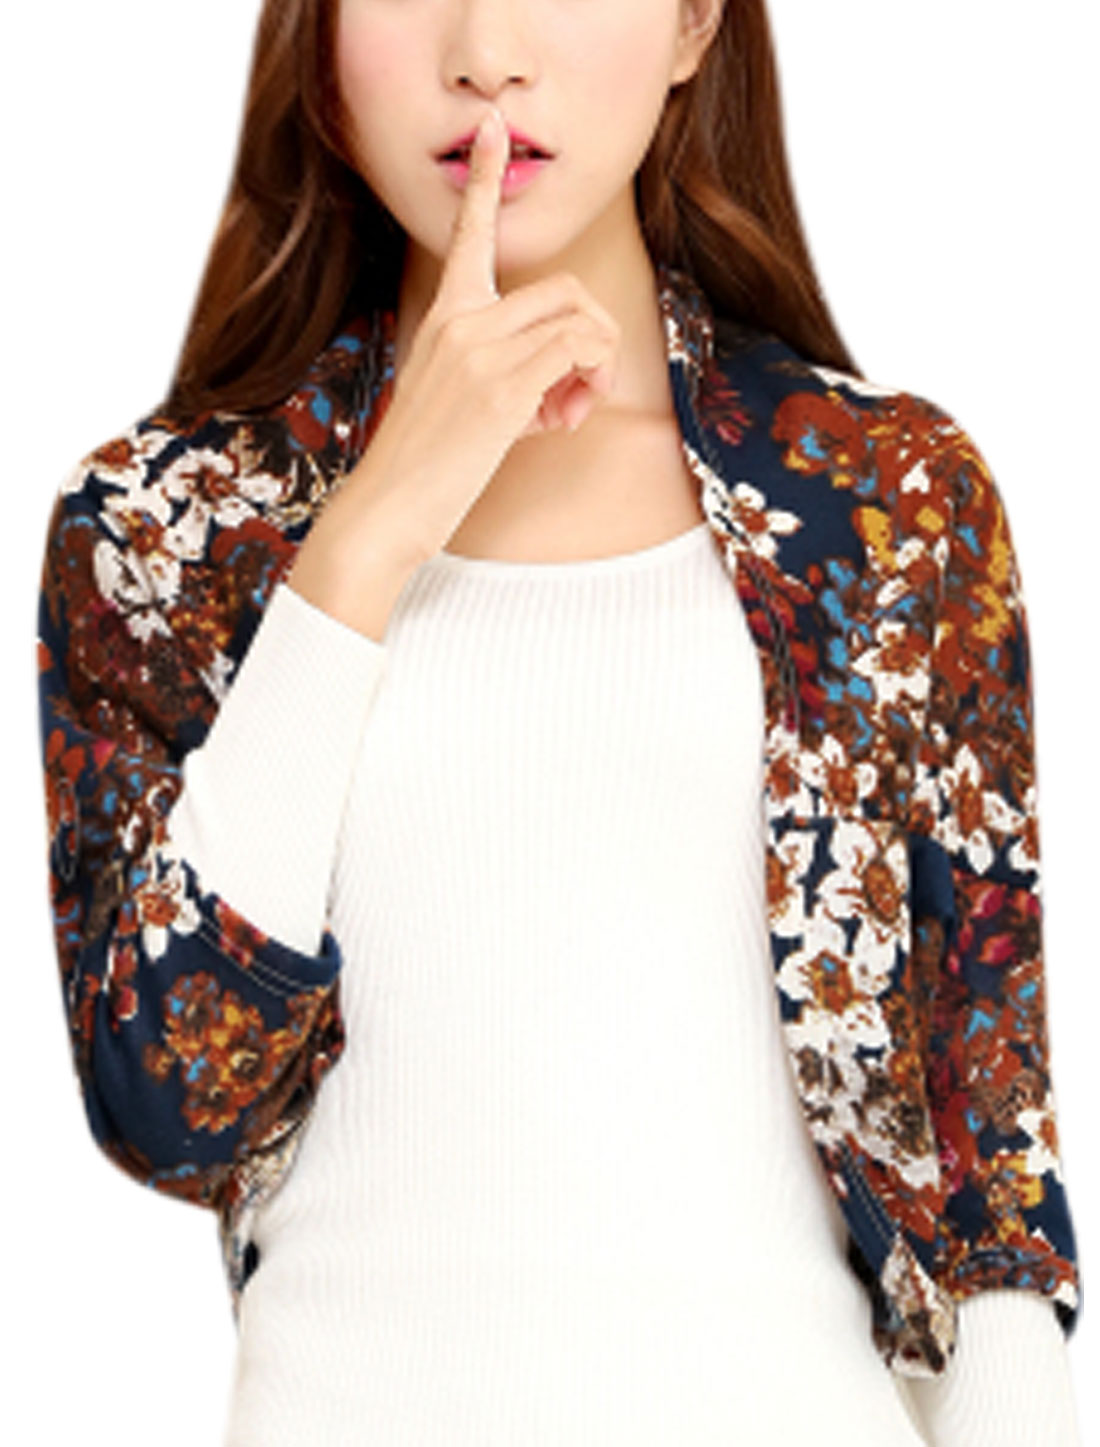 Women Floral Prints Front Opening Fashion Design Shrug Navy Blue XS